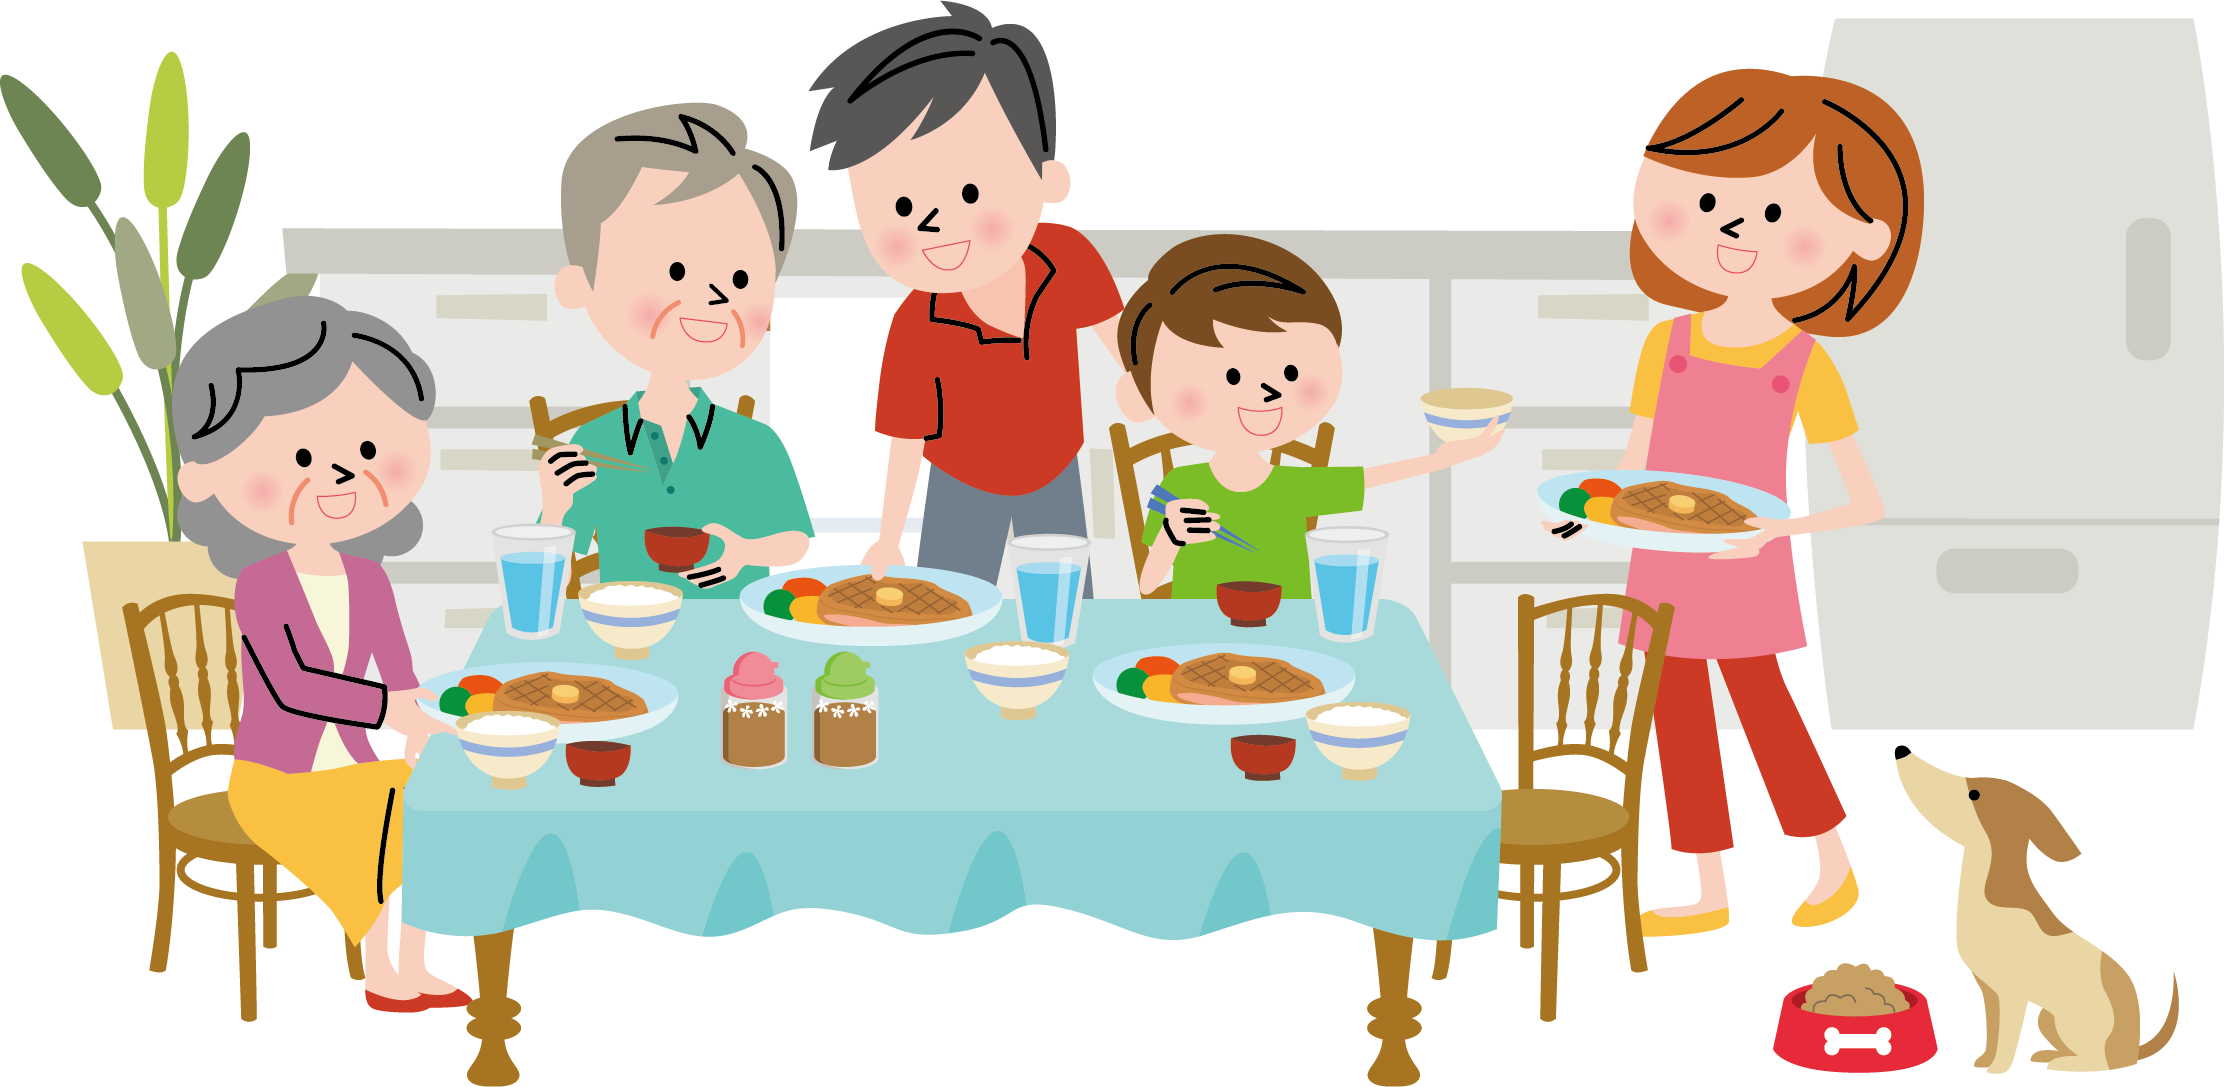 Family dinner clipart clipart images gallery for free download.